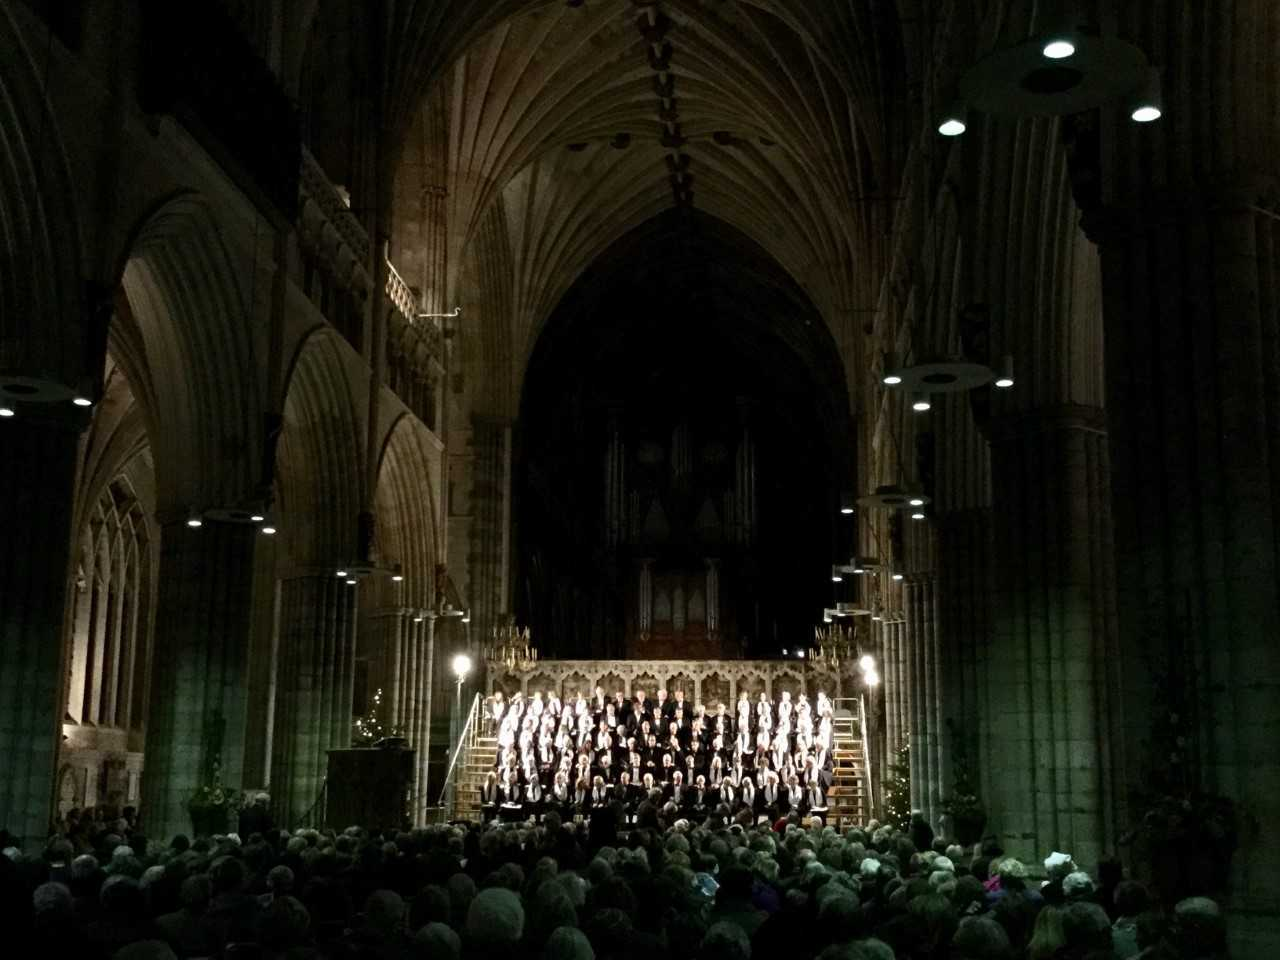 Exeter Philharmonic Choir Shines the Spotlight on Young Soloists in Lord Mayor's Concert